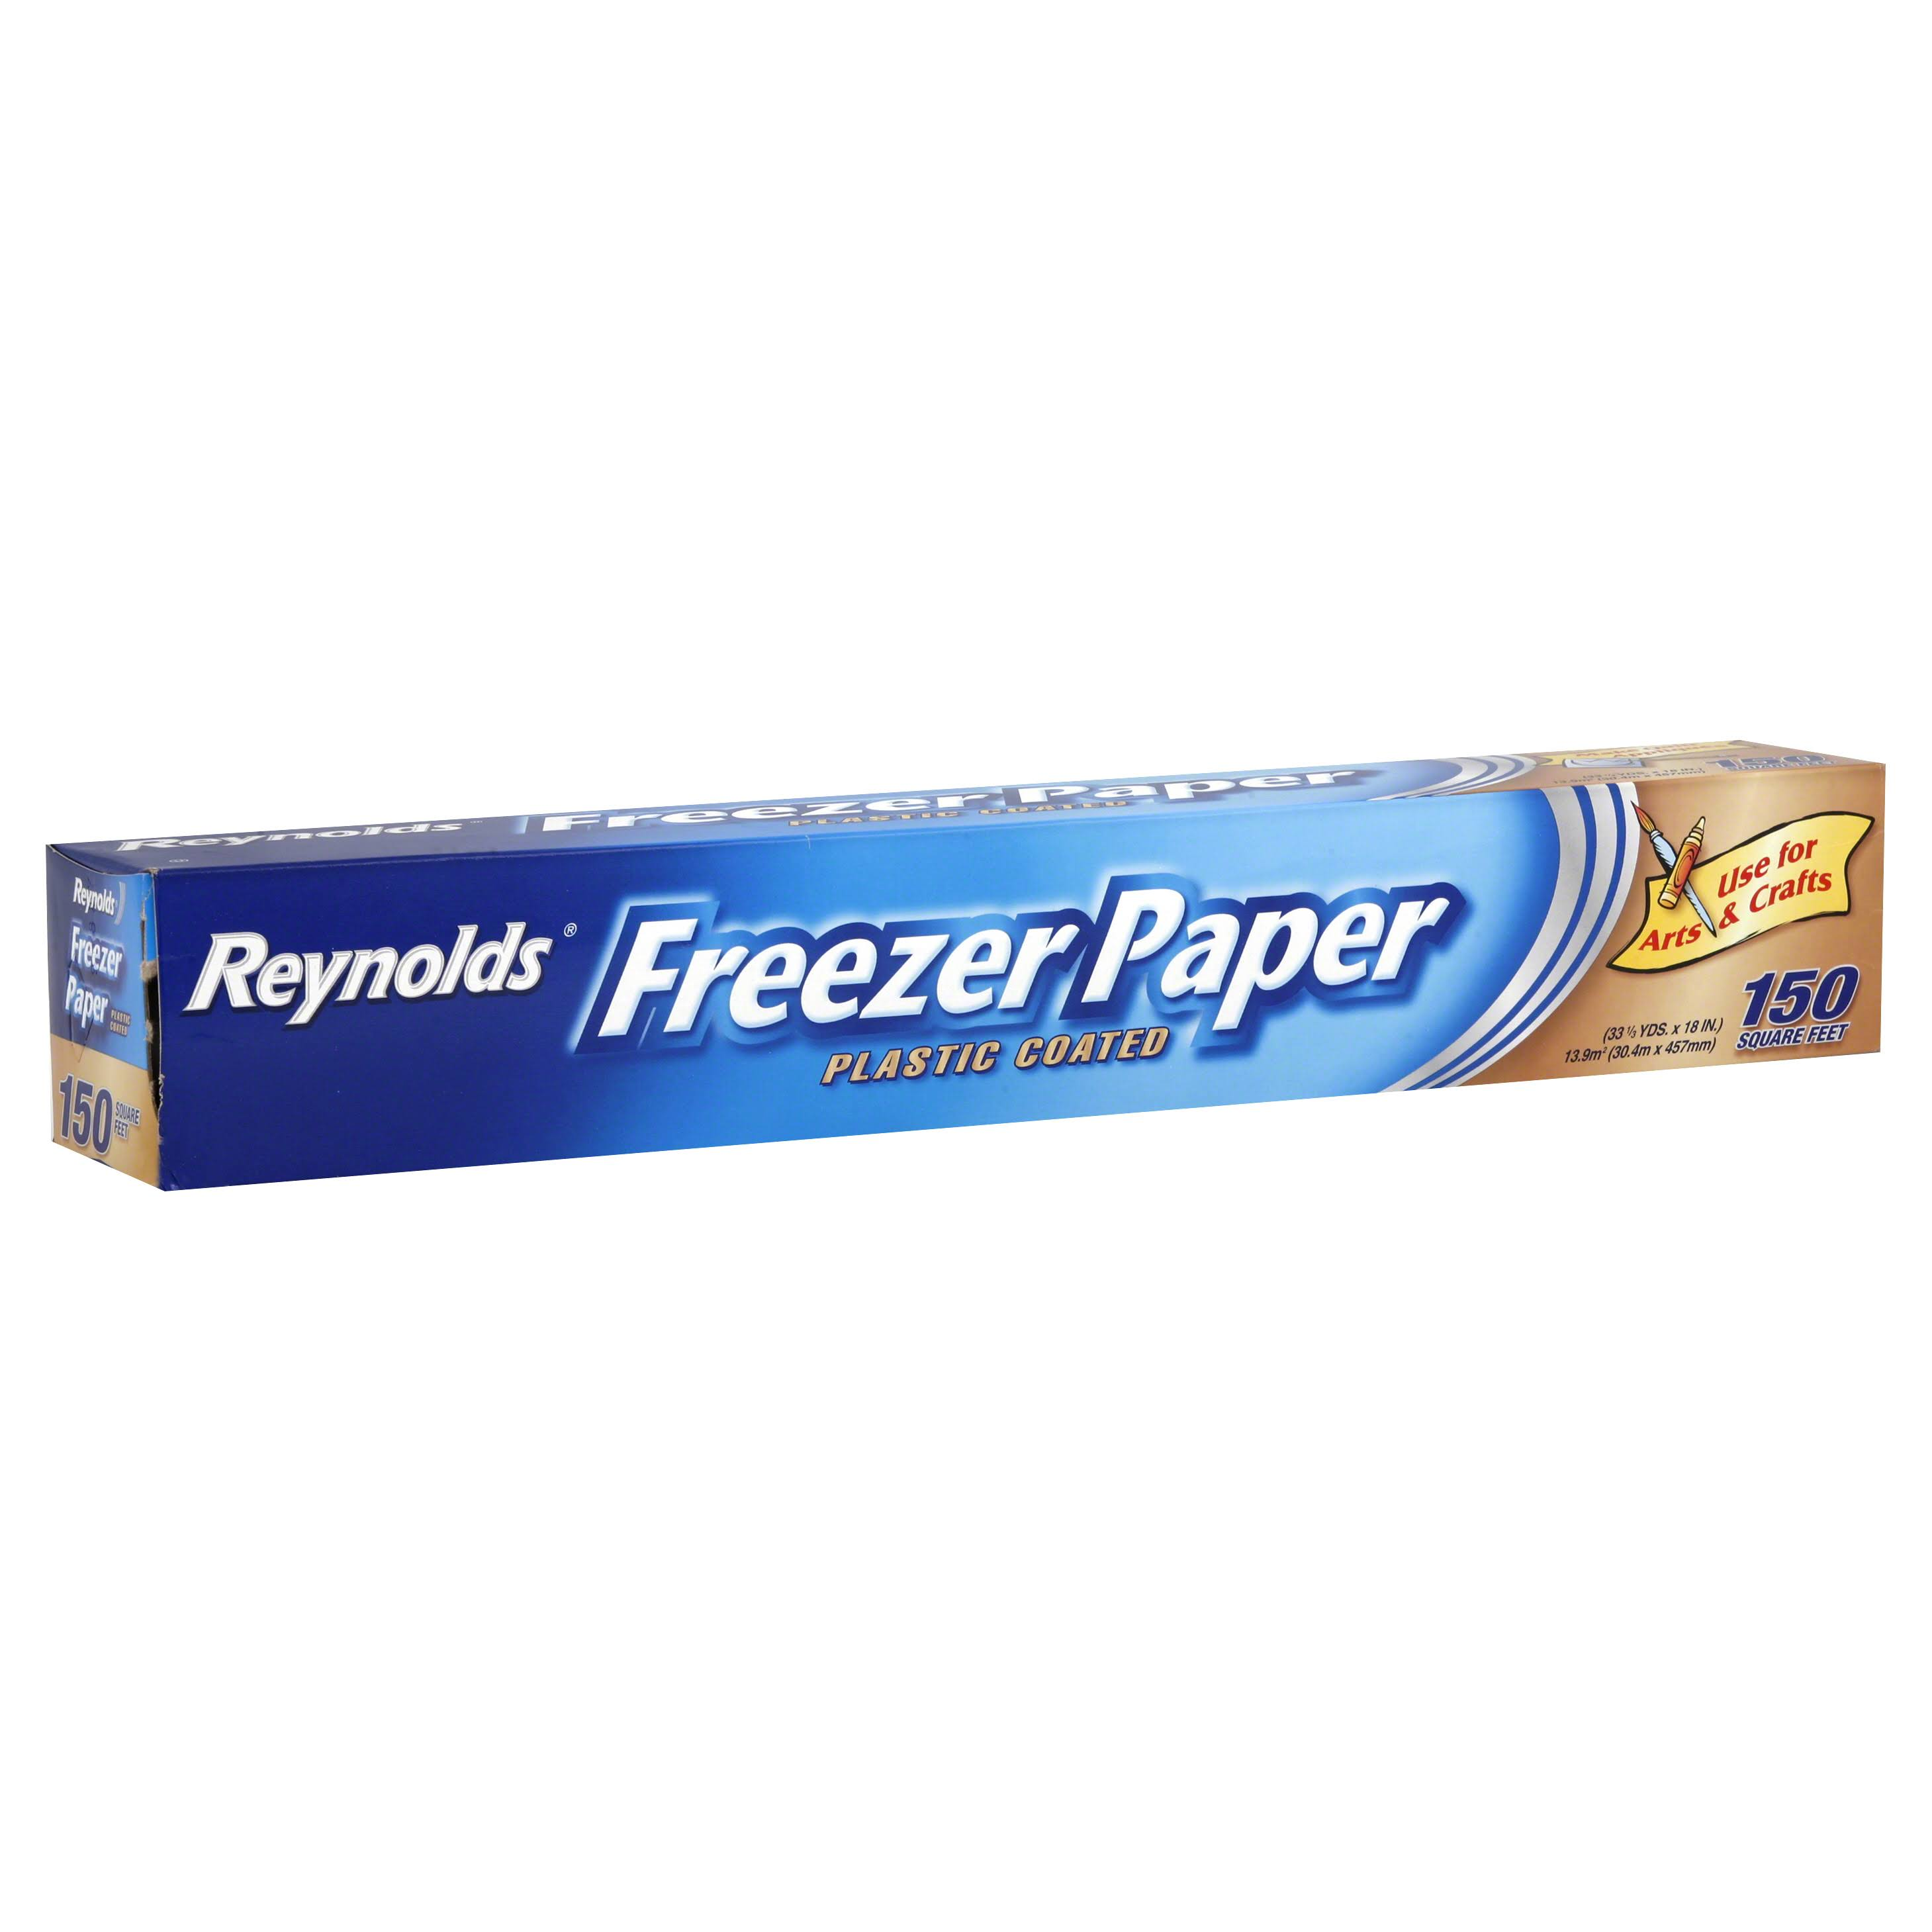 Reynolds Freezer Paper - 150'sq